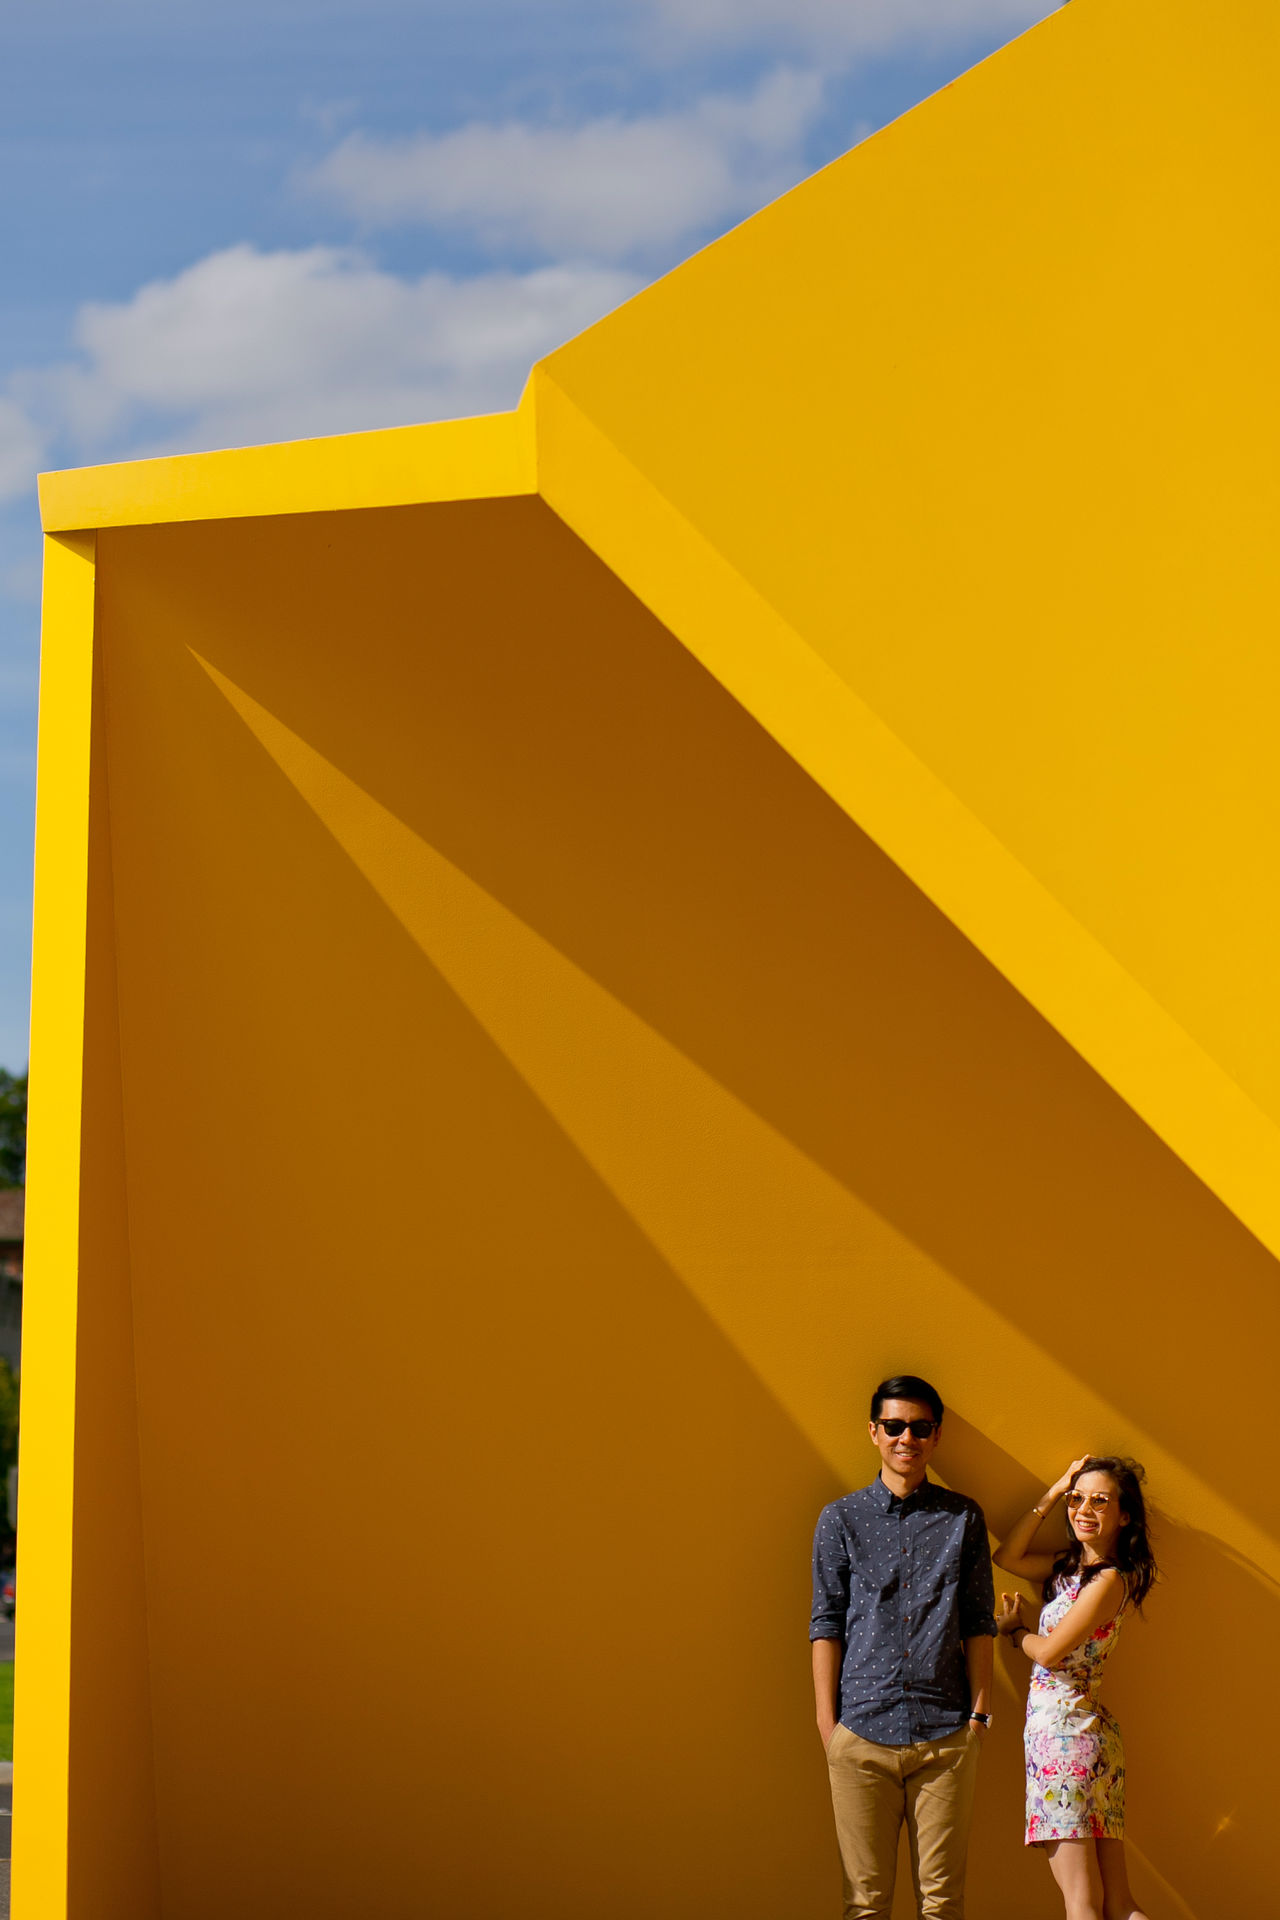 Enjoying the Sun ^^ Adult Adults Only Architecture Cloud - Sky Day Design Enjoying The Sun Light And Shadow Men Outdoors People Sky Standing Togetherness Two People Women Yellow Young Adult The City Light